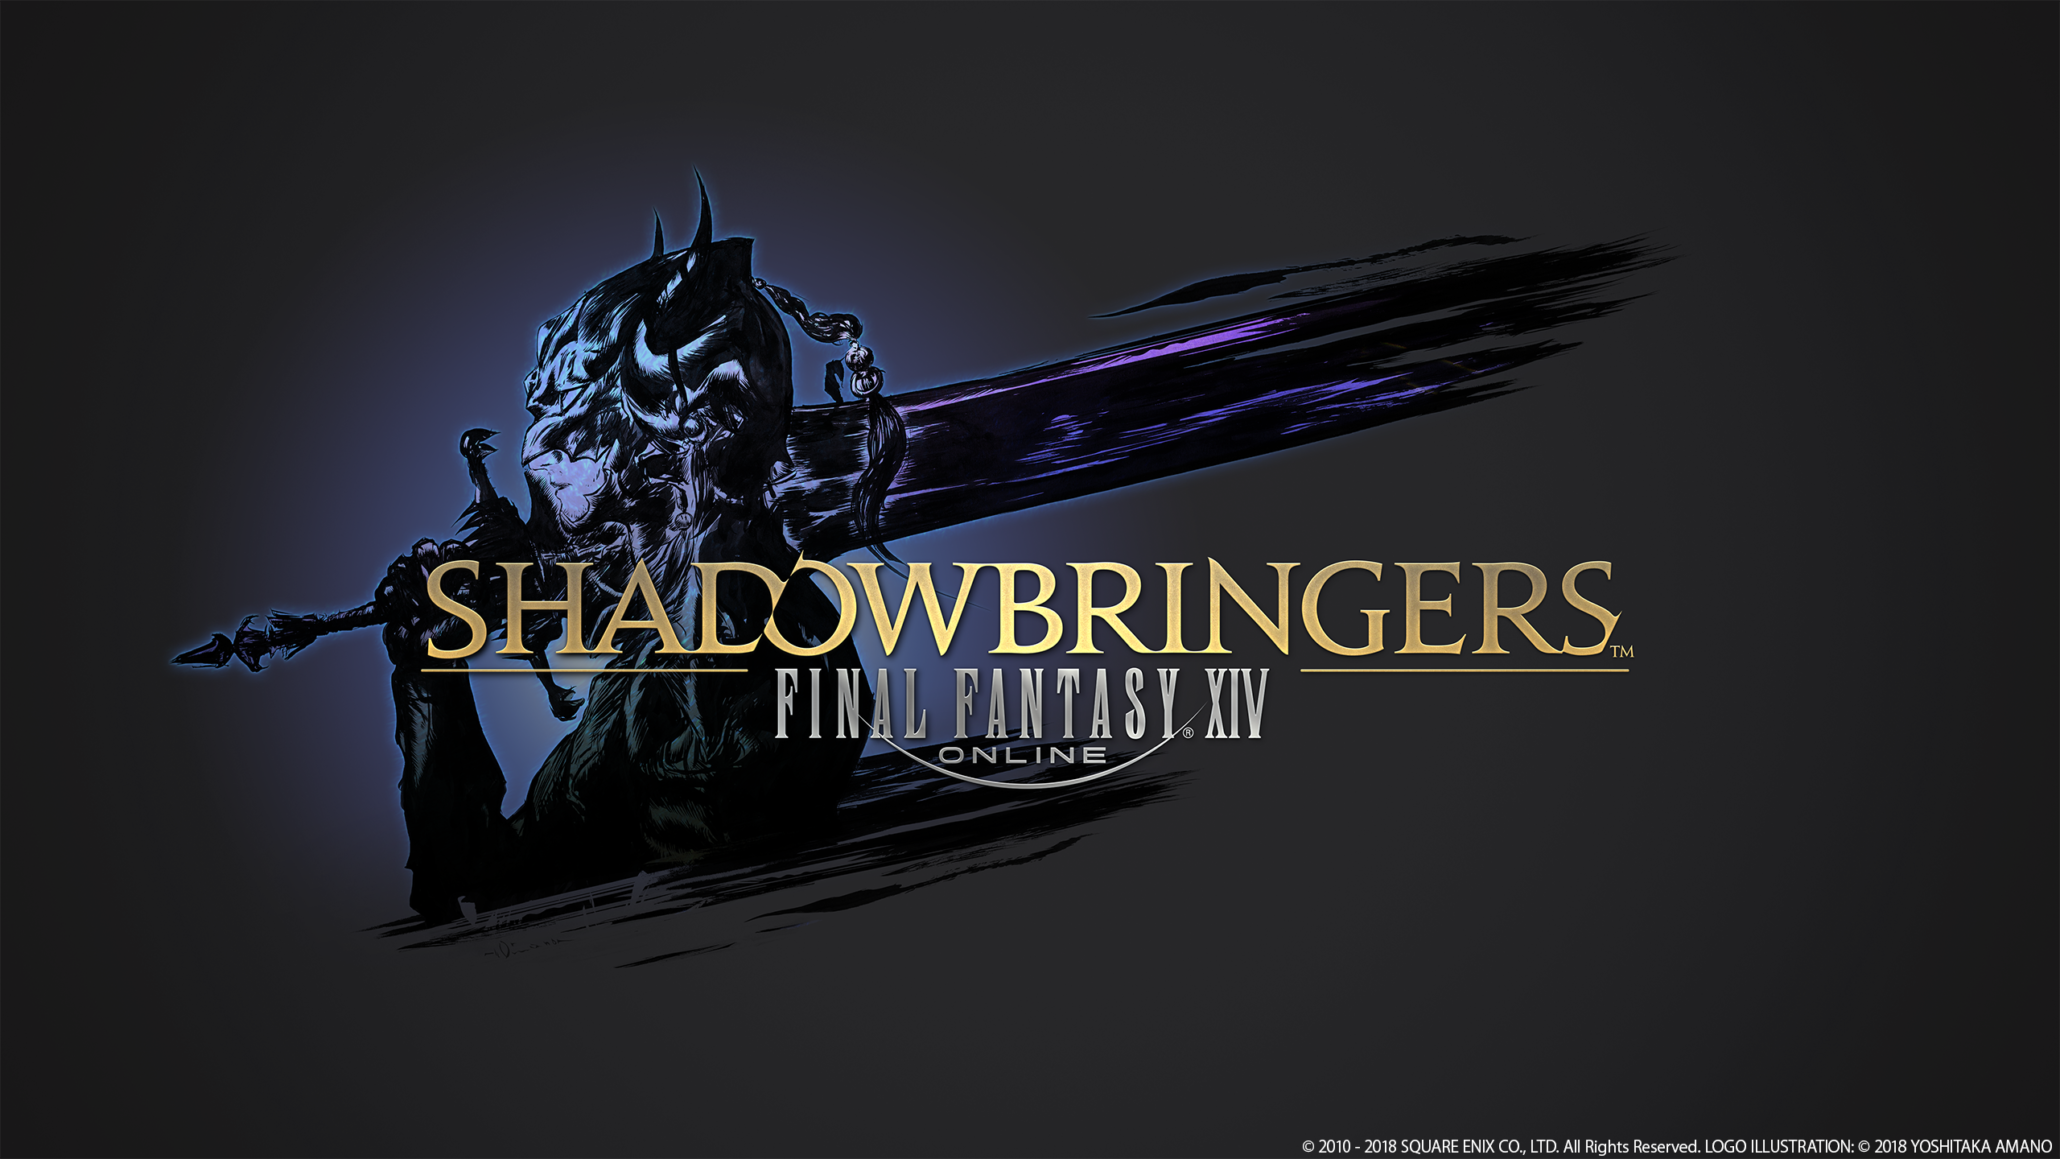 New Final Fantasy XIV Expansion Shadowbringers Announced For Summer 2019 Release (FF News 11/9/18 to 11/16/18)